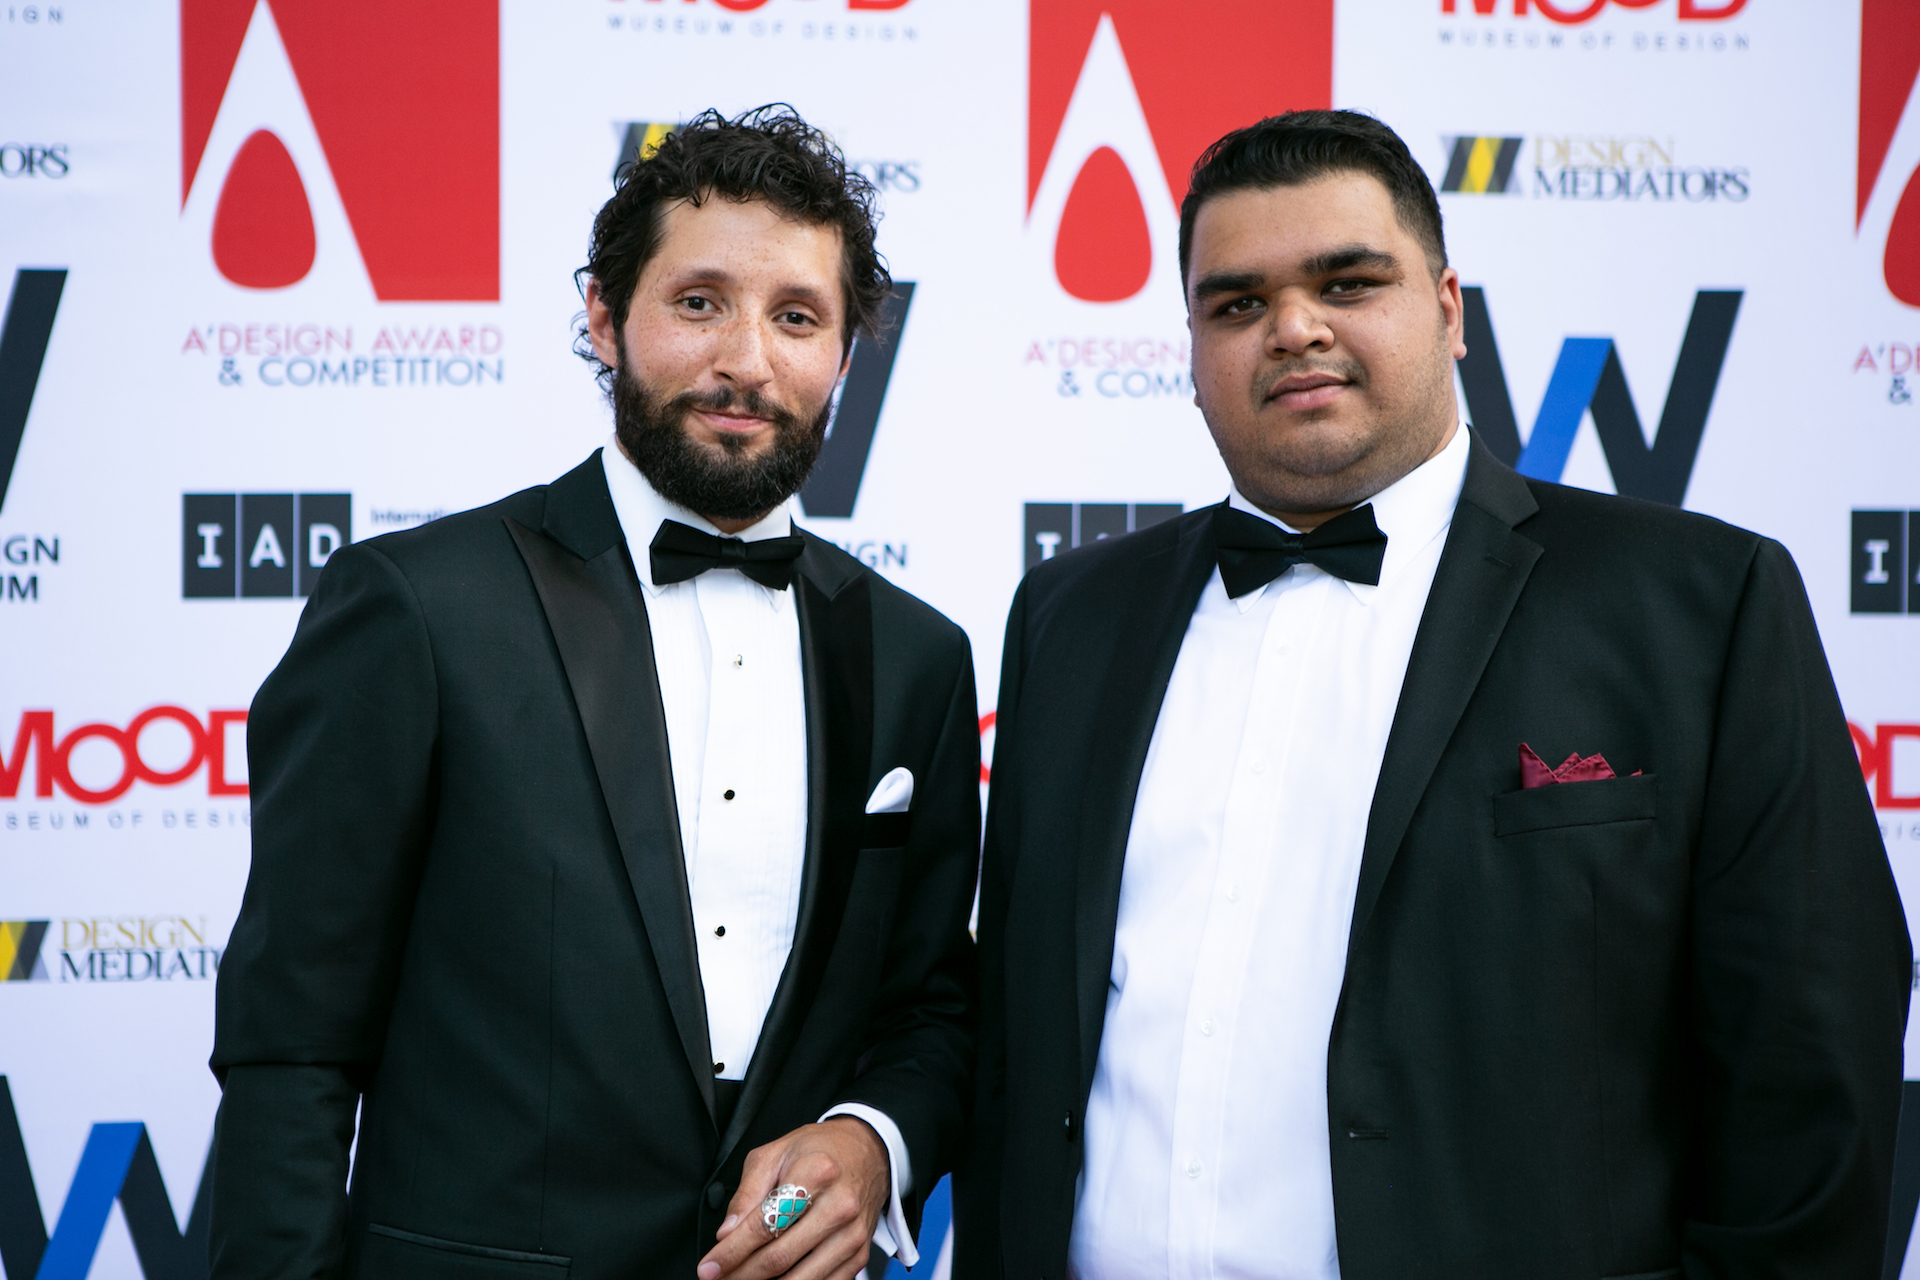 A' Design Award Gala Night at the Teatro Sociale in Como, Italy with New Relic Analytics Manager Ankush Rustagi